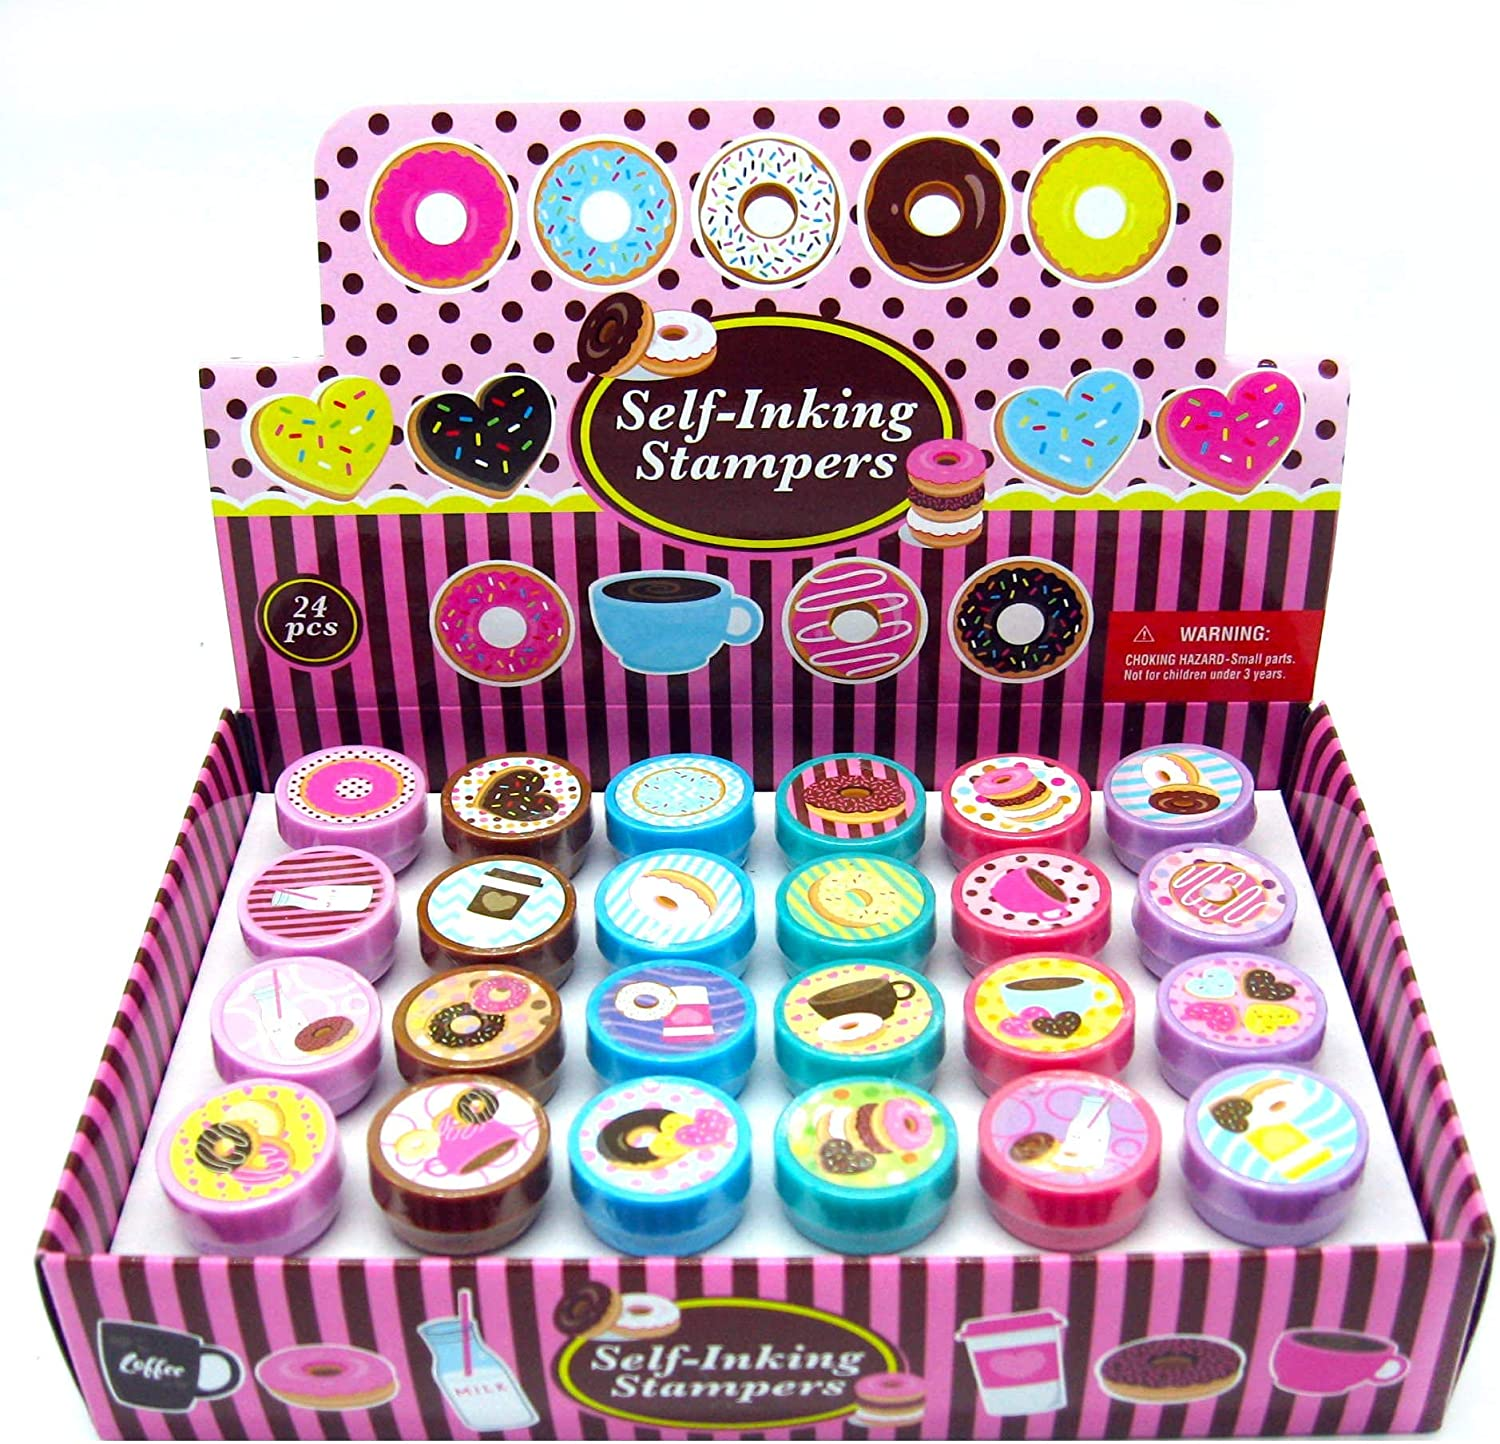 TINYMILLS 24 Pcs Donuts Stampers for Kids Donut Party Favors Goodie Bag Stuffers Pinata Fillers Classroom Rewards Carnival Prizes